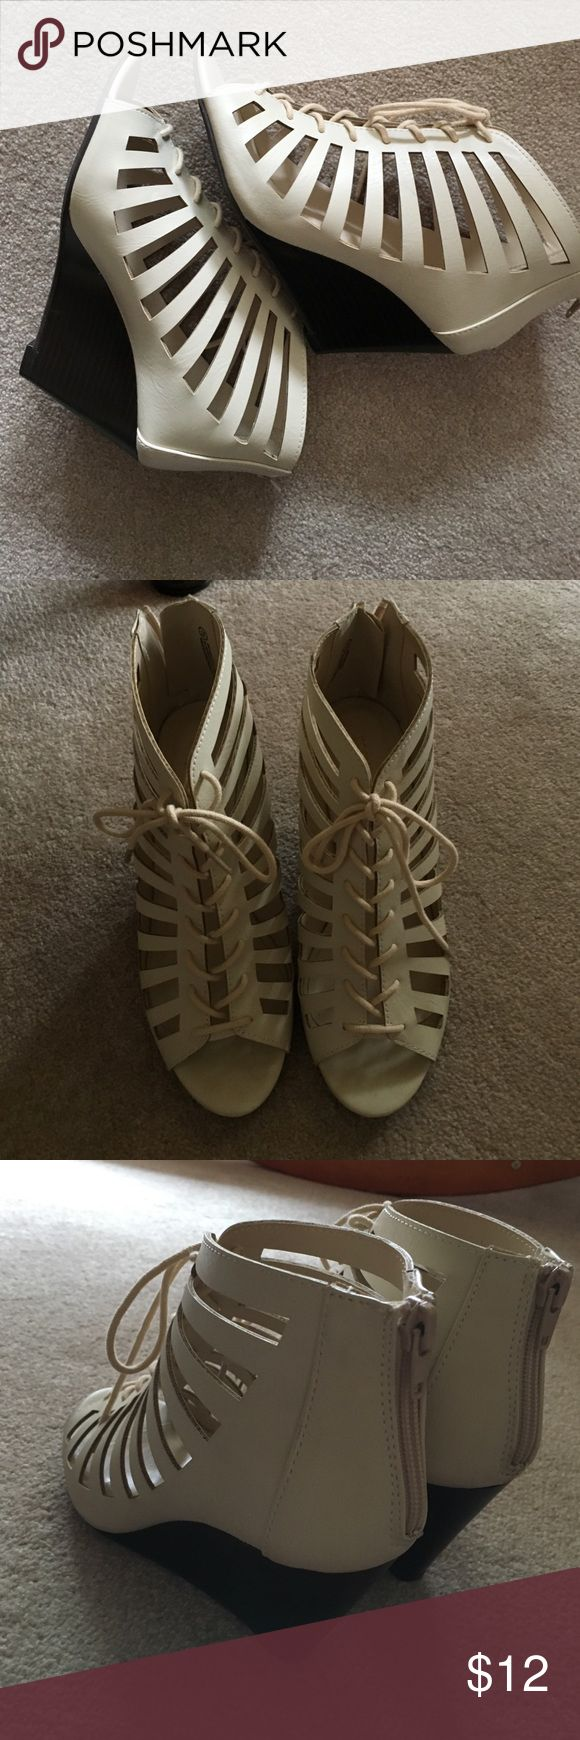 Maurice's lace up wedge shoes Never been worn- bought them to wear to a wedding that I ended up not being able to attend. Size 7.5 by Maurice's Maurices Shoes Heels